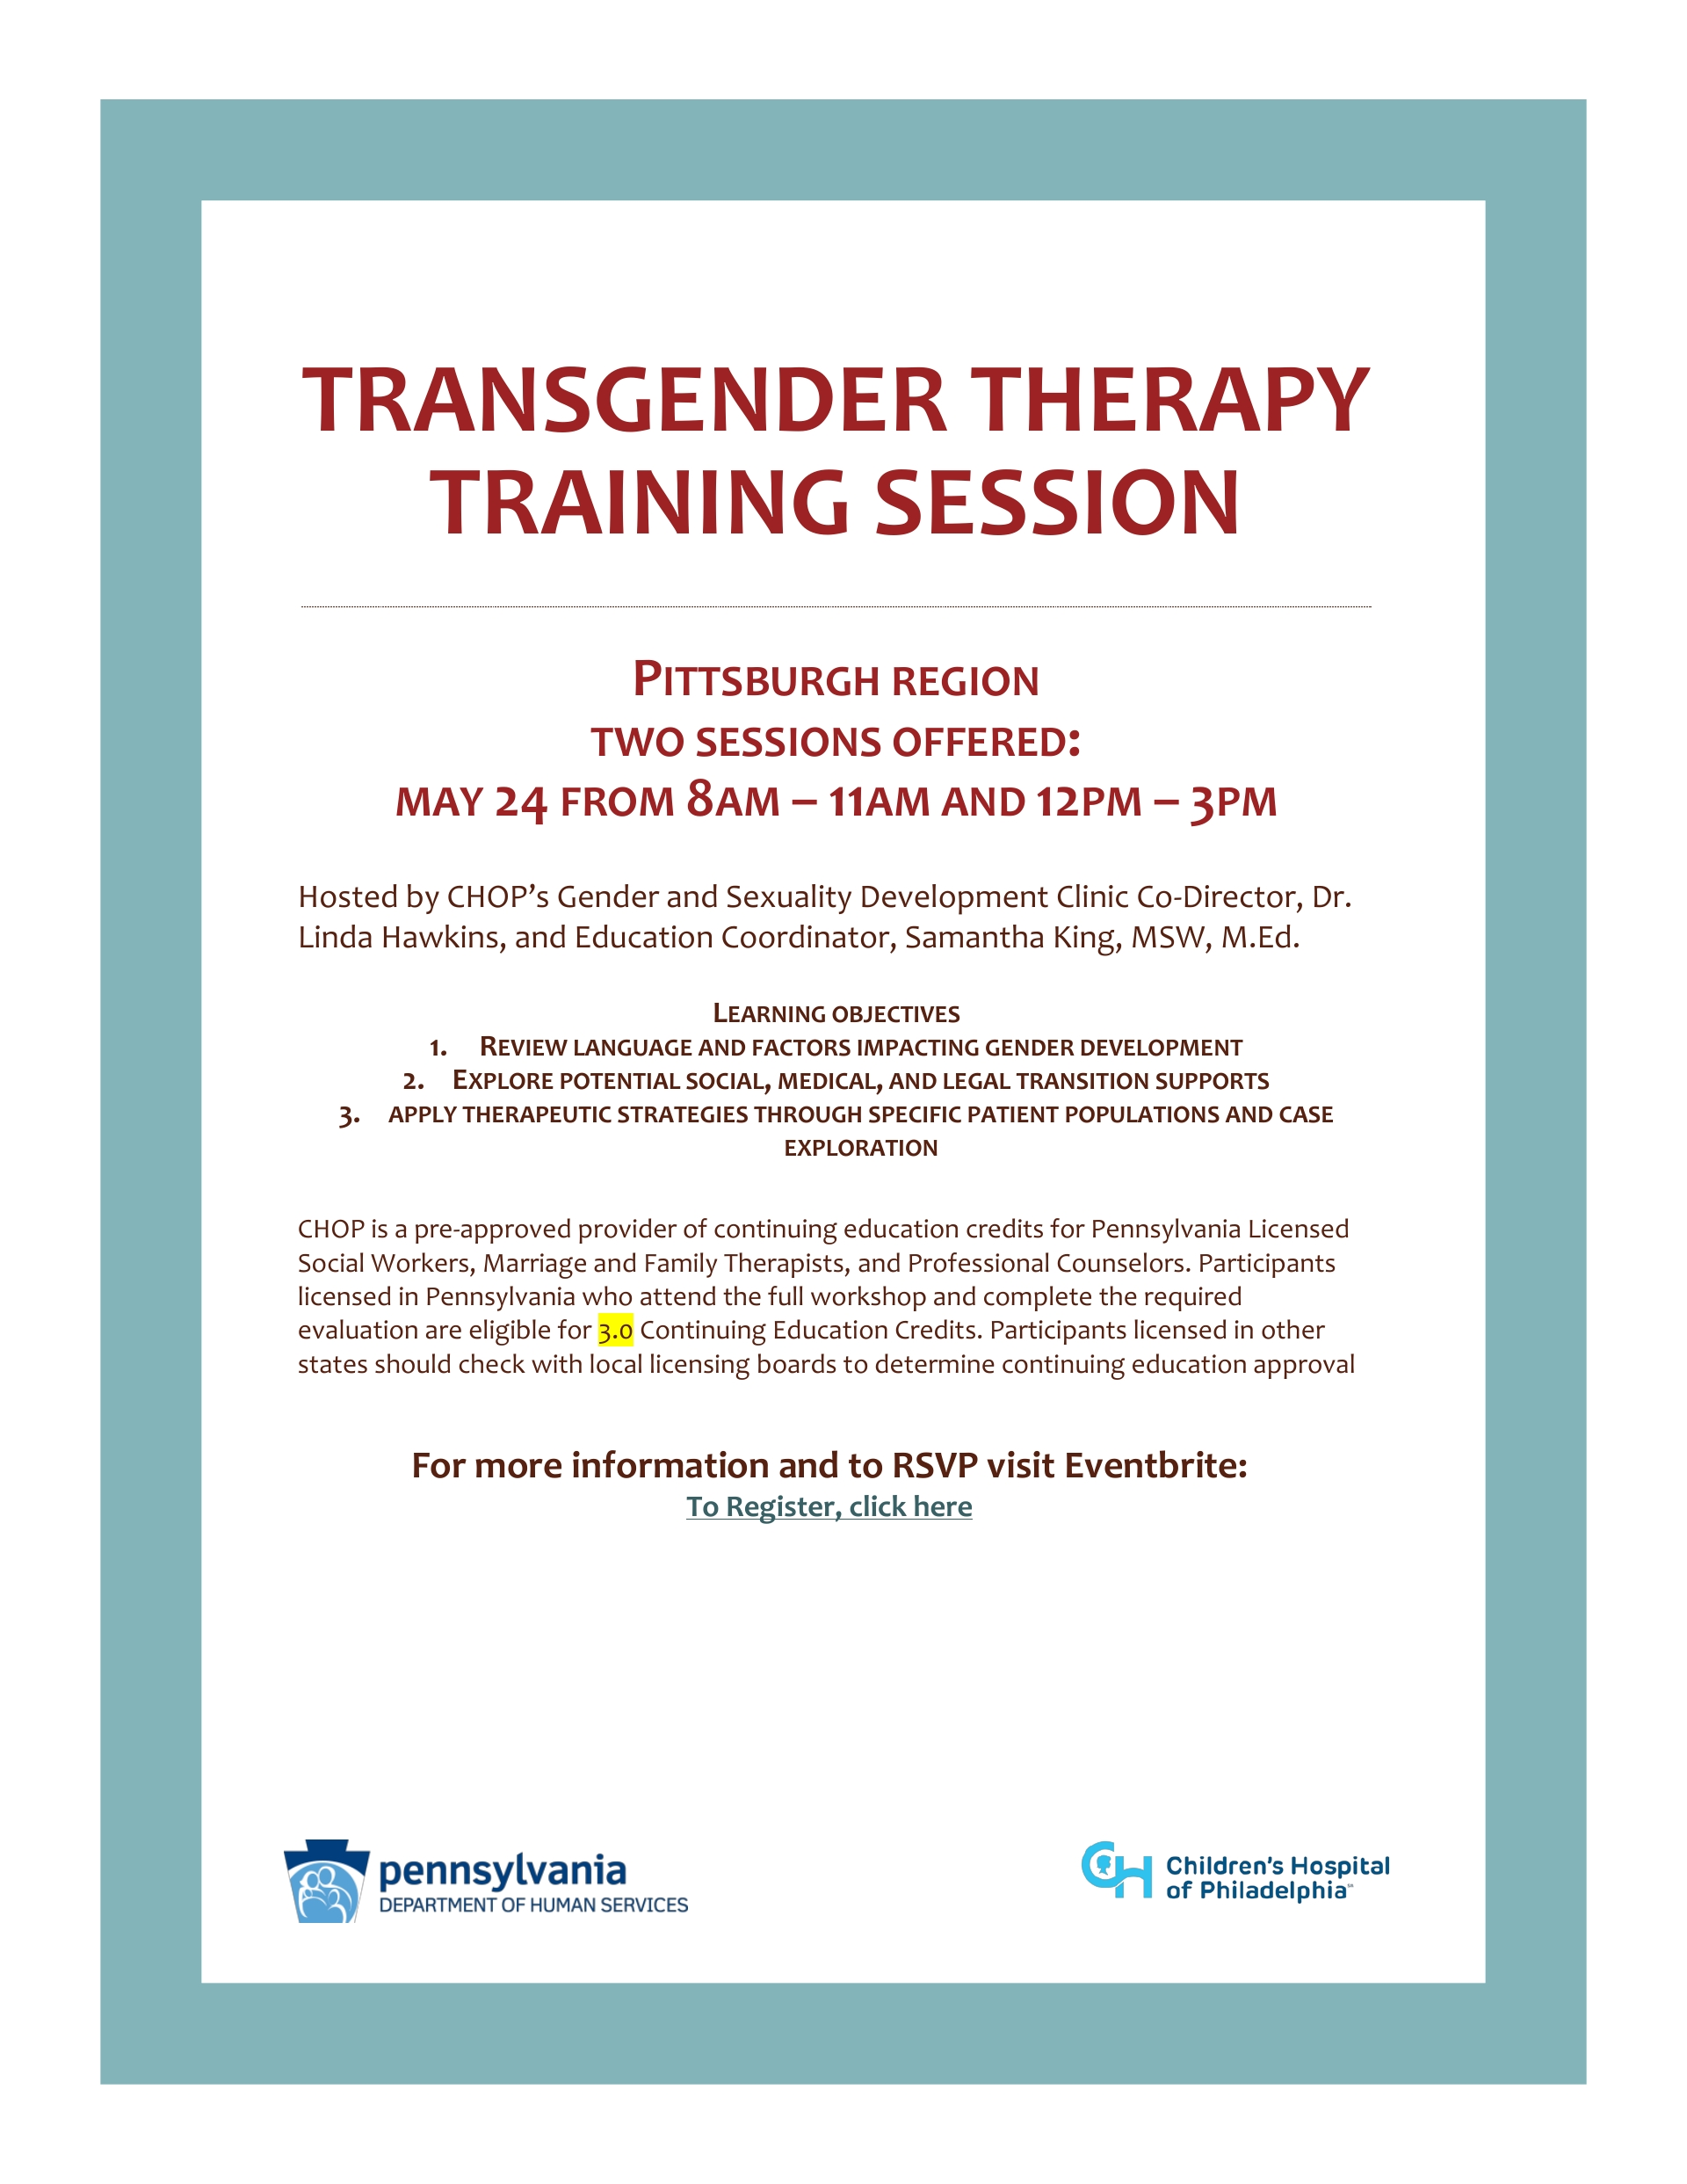 TRANSGENDER THERAPY TRAINING SESSION